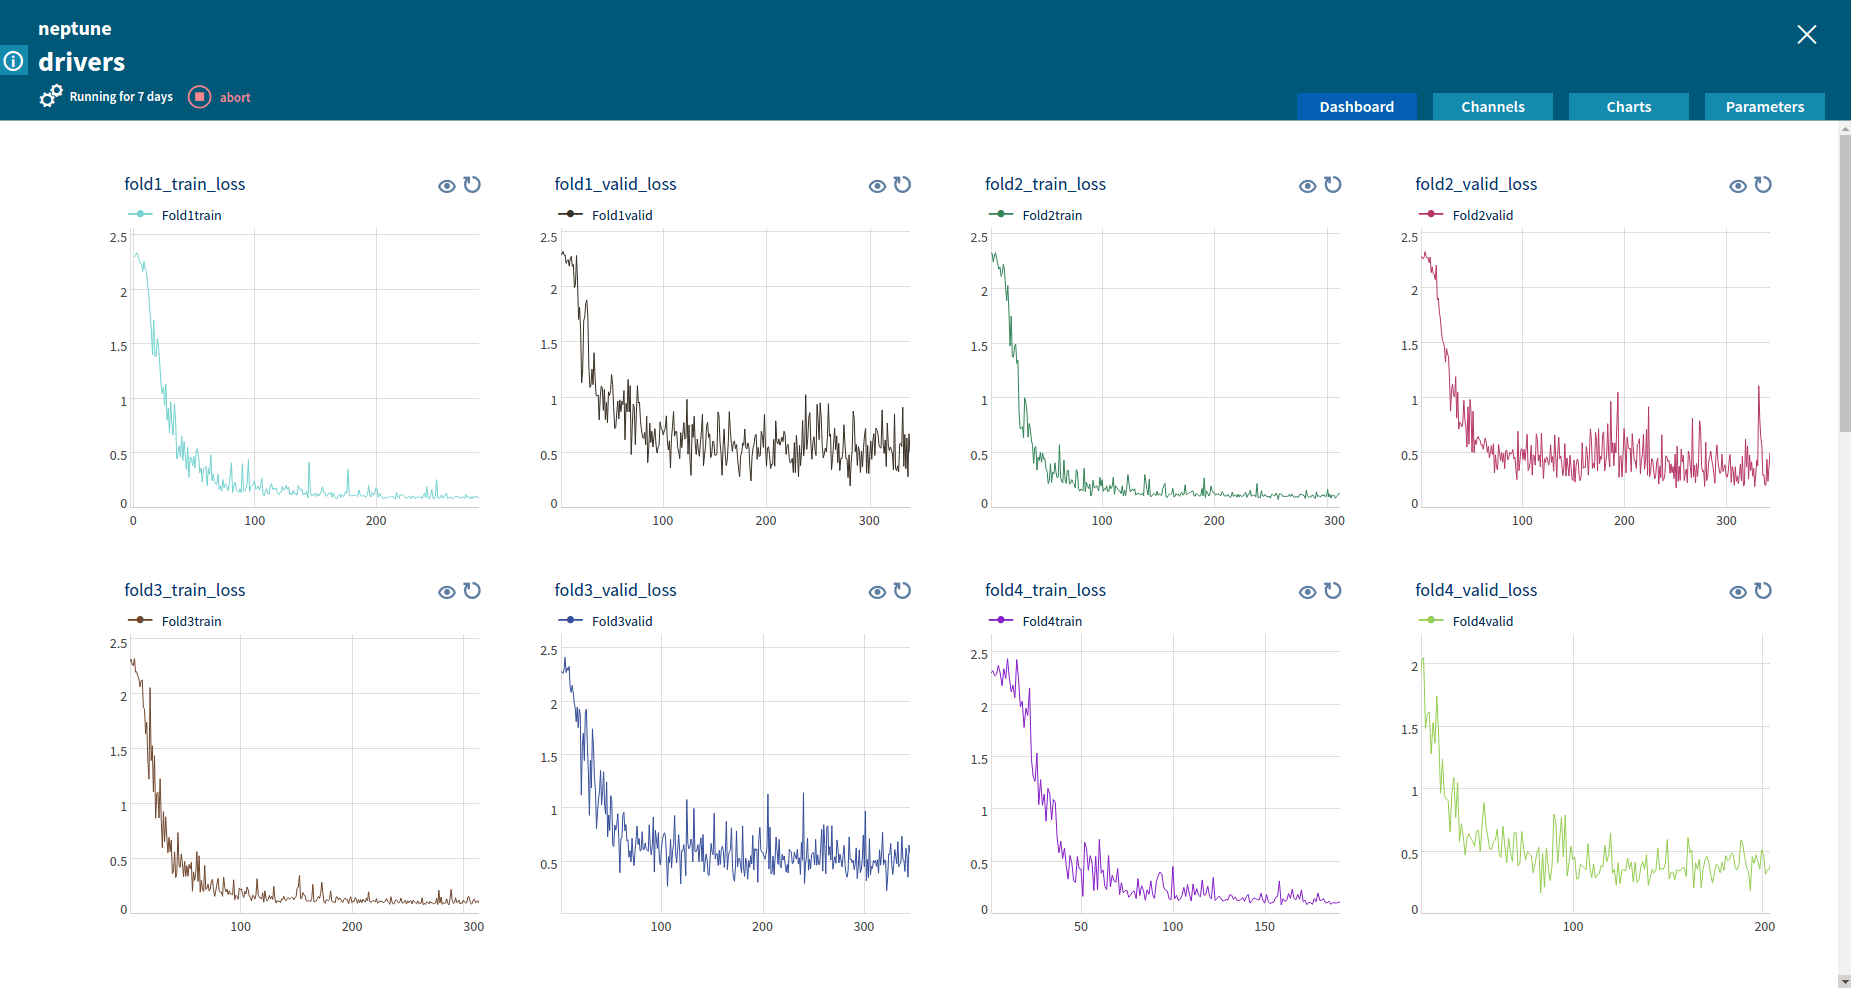 Neptune – Machine Learning Platform, Charts displaying custom metrics